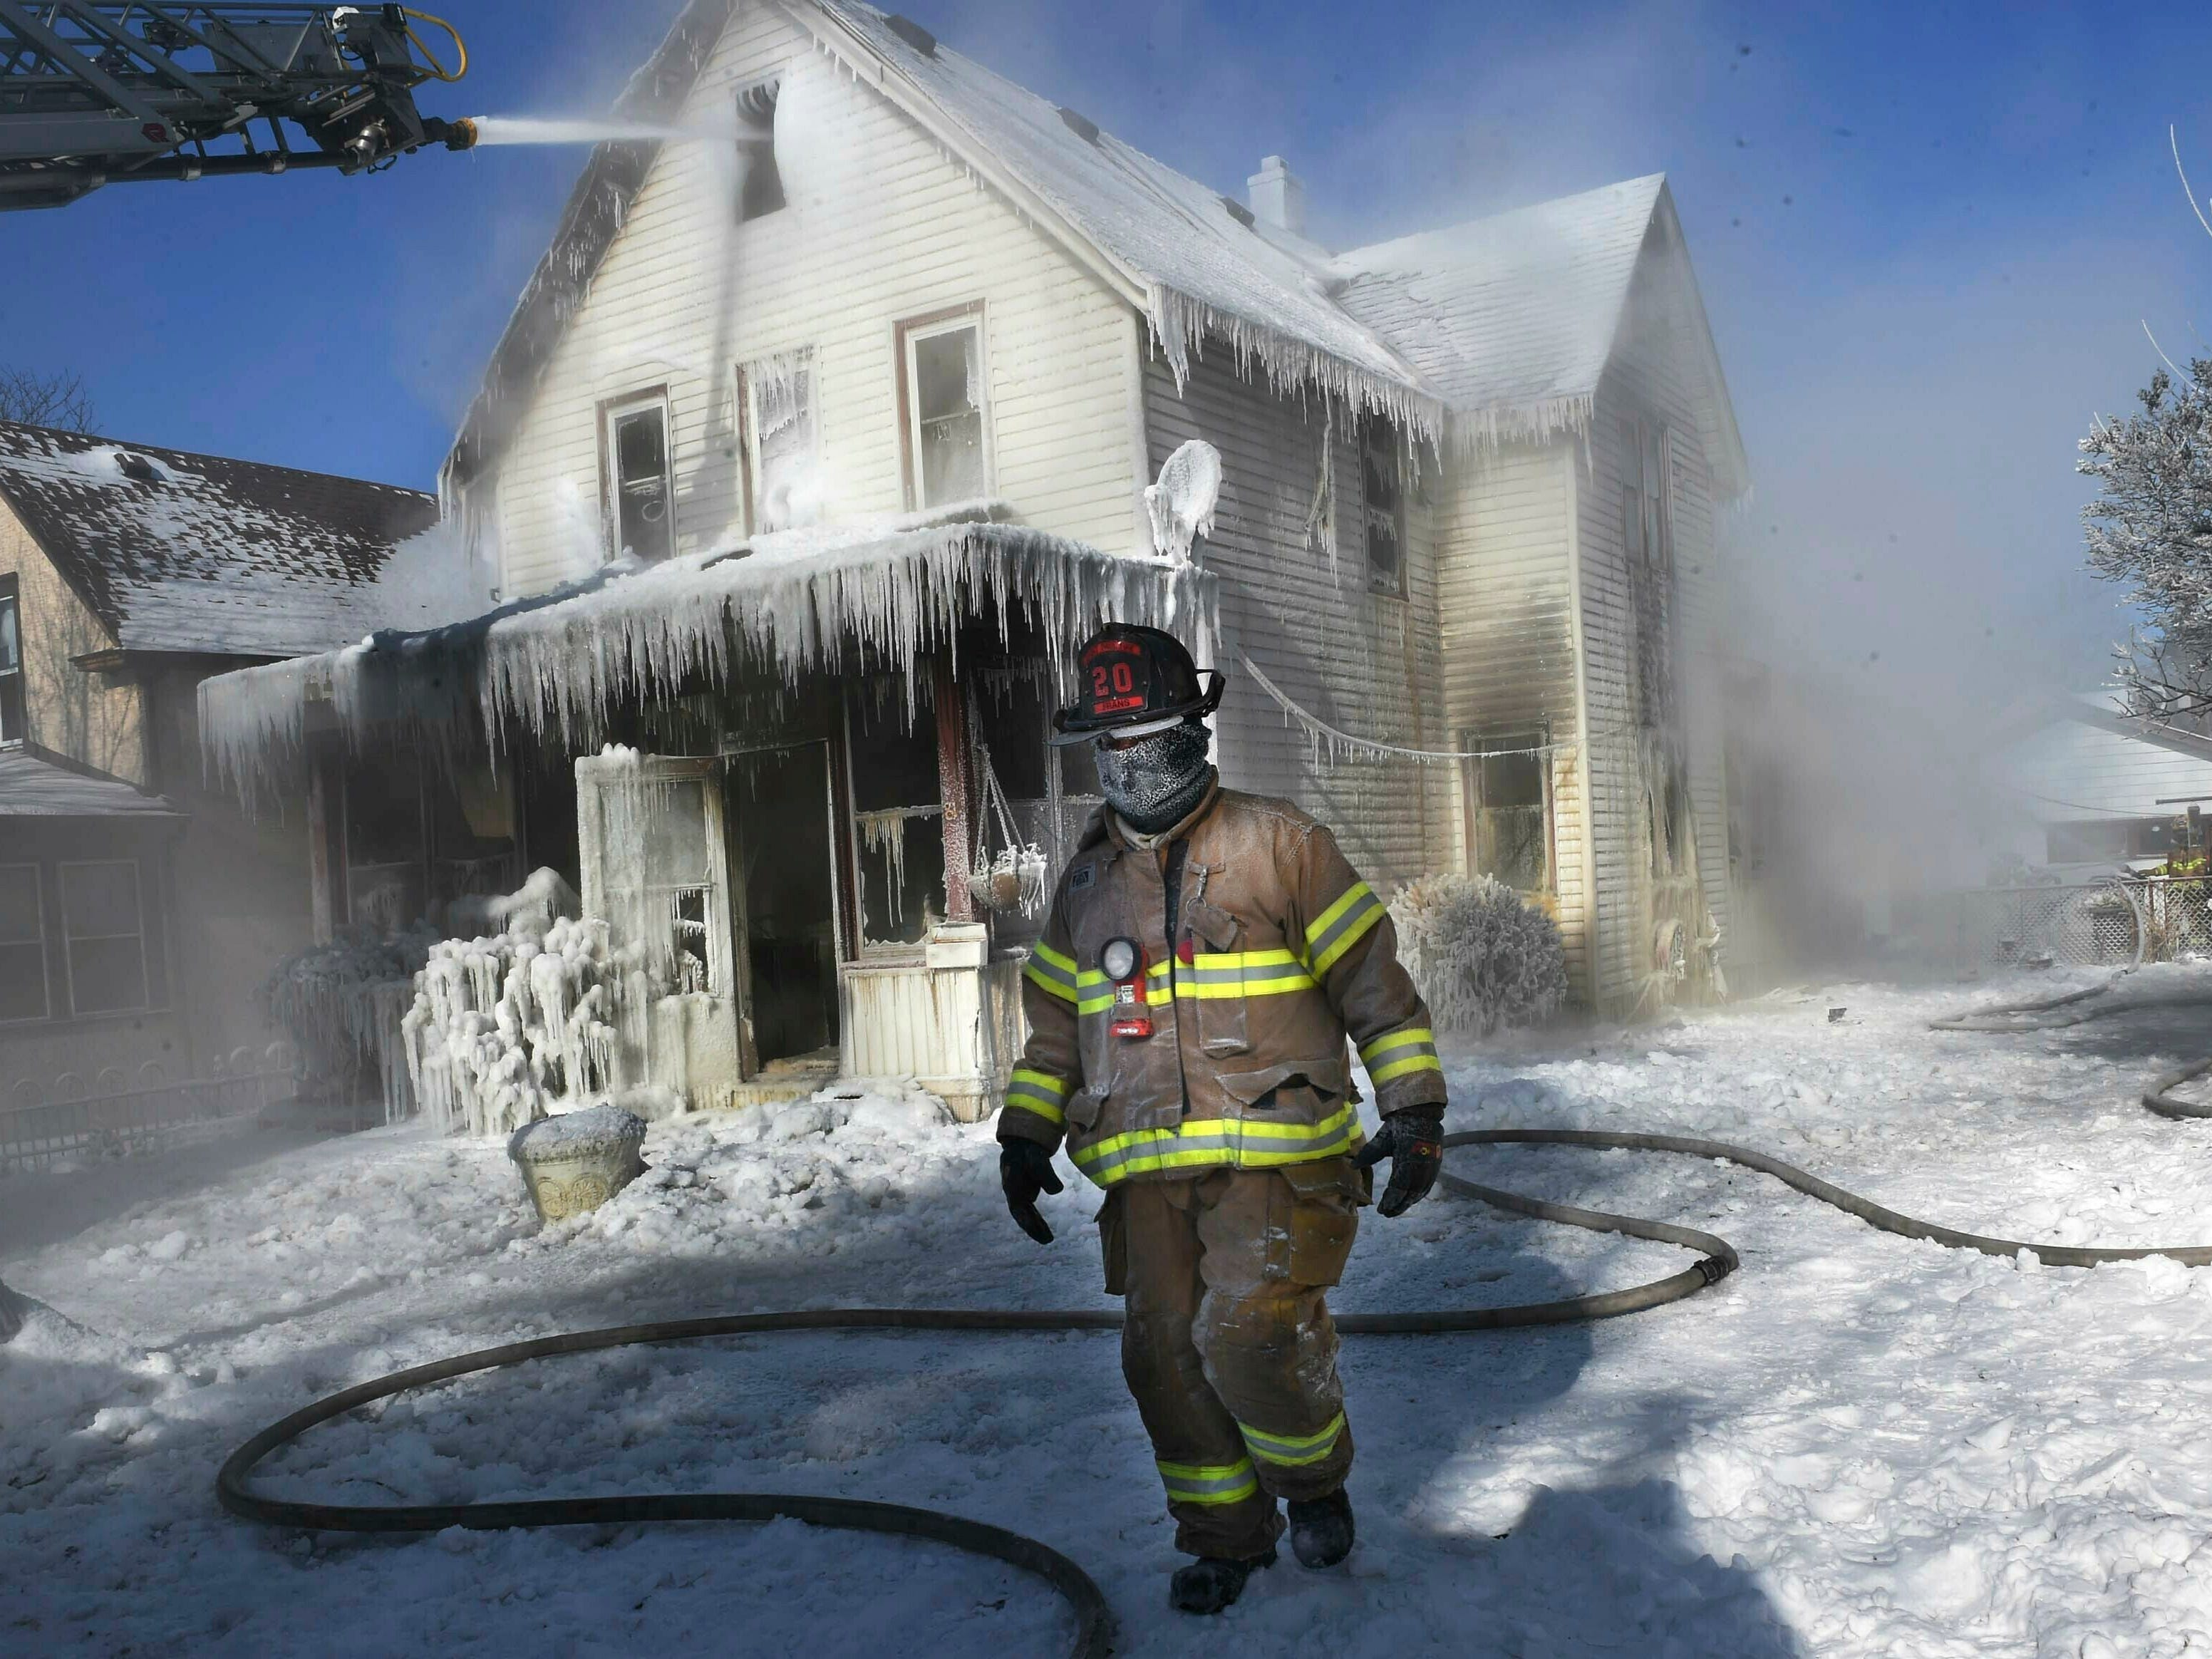 A firefighter walks past an ice-encrusted home after an early morning house fire Jan. 30, 2019 in St. Paul, Minn. Firefighters were called to the house fire in the North End shortly after 4:15 a.m. The air temperature was 27 degrees below zero with wind chills at 52 degrees below zero. No injuries were reported.